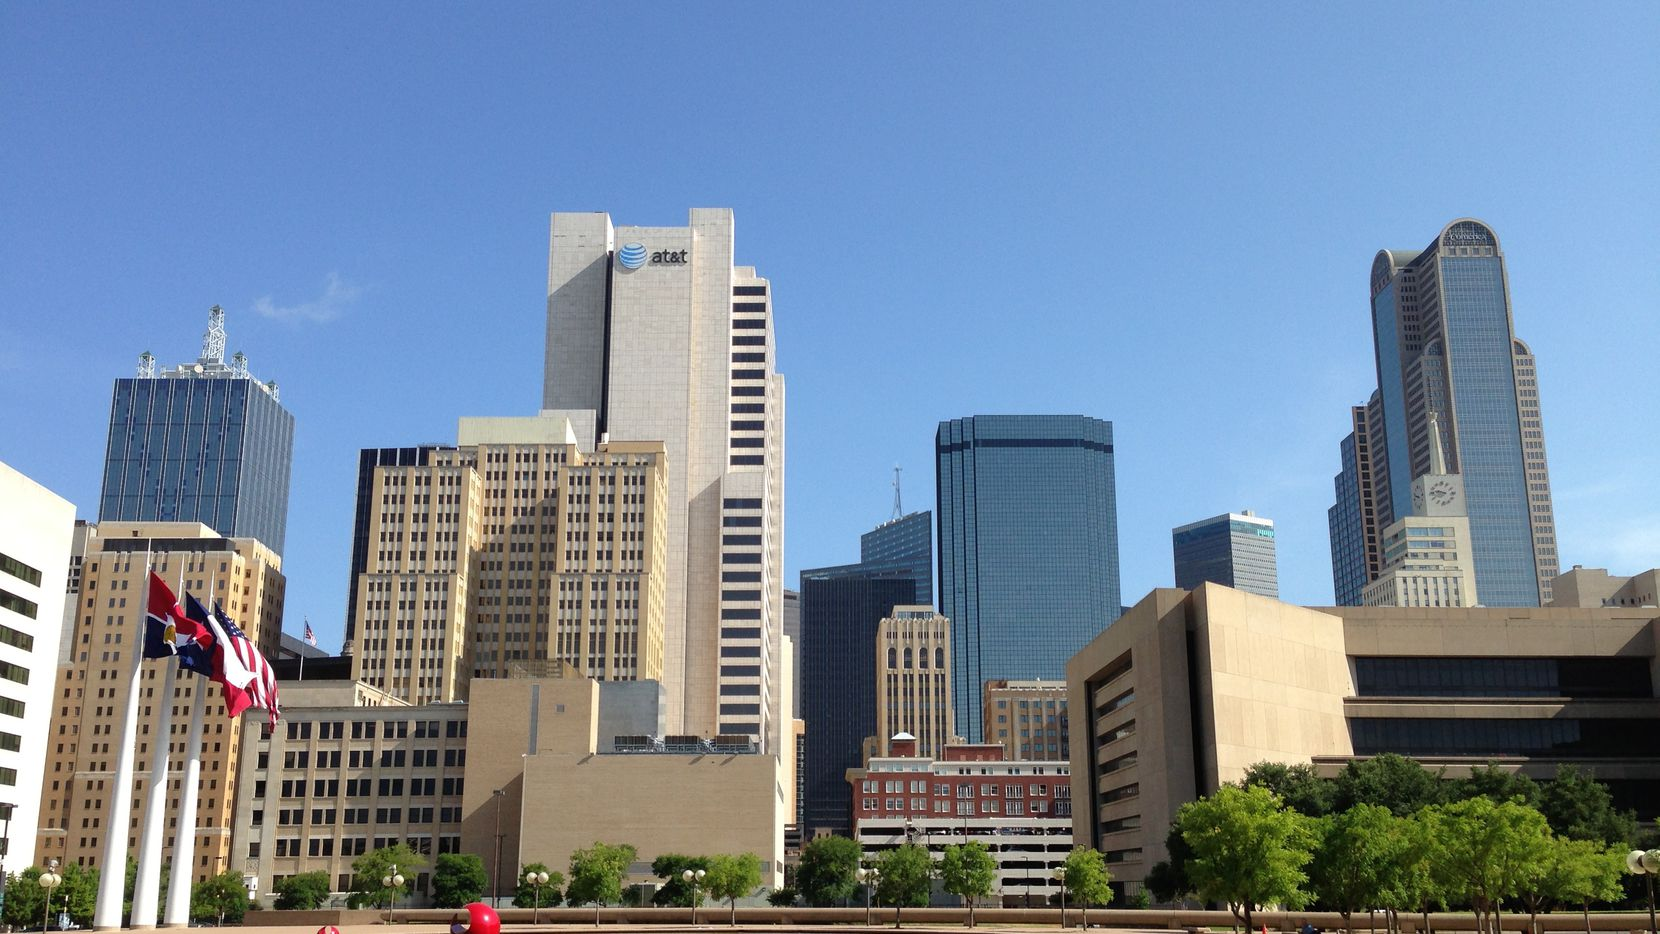 Downtown Dallas saw more than 111,000 square feet of net office leasing in the first three months of 2019.